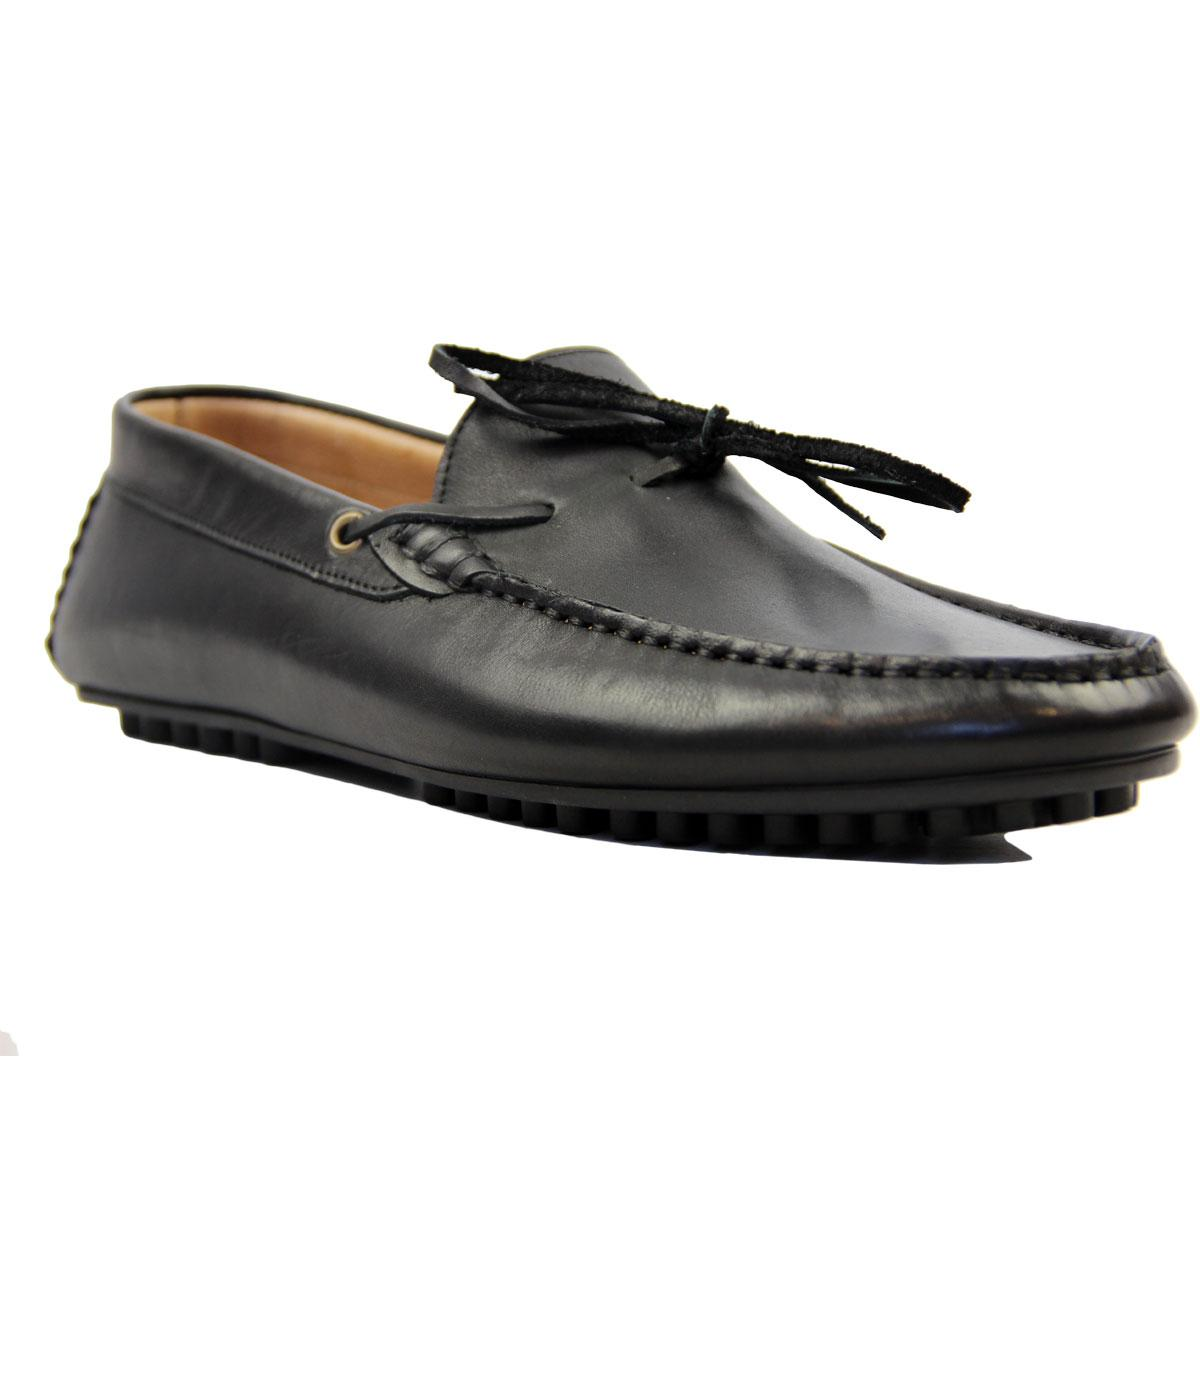 Felipe H by HUDSON Retro Moccasin Driving Shoes